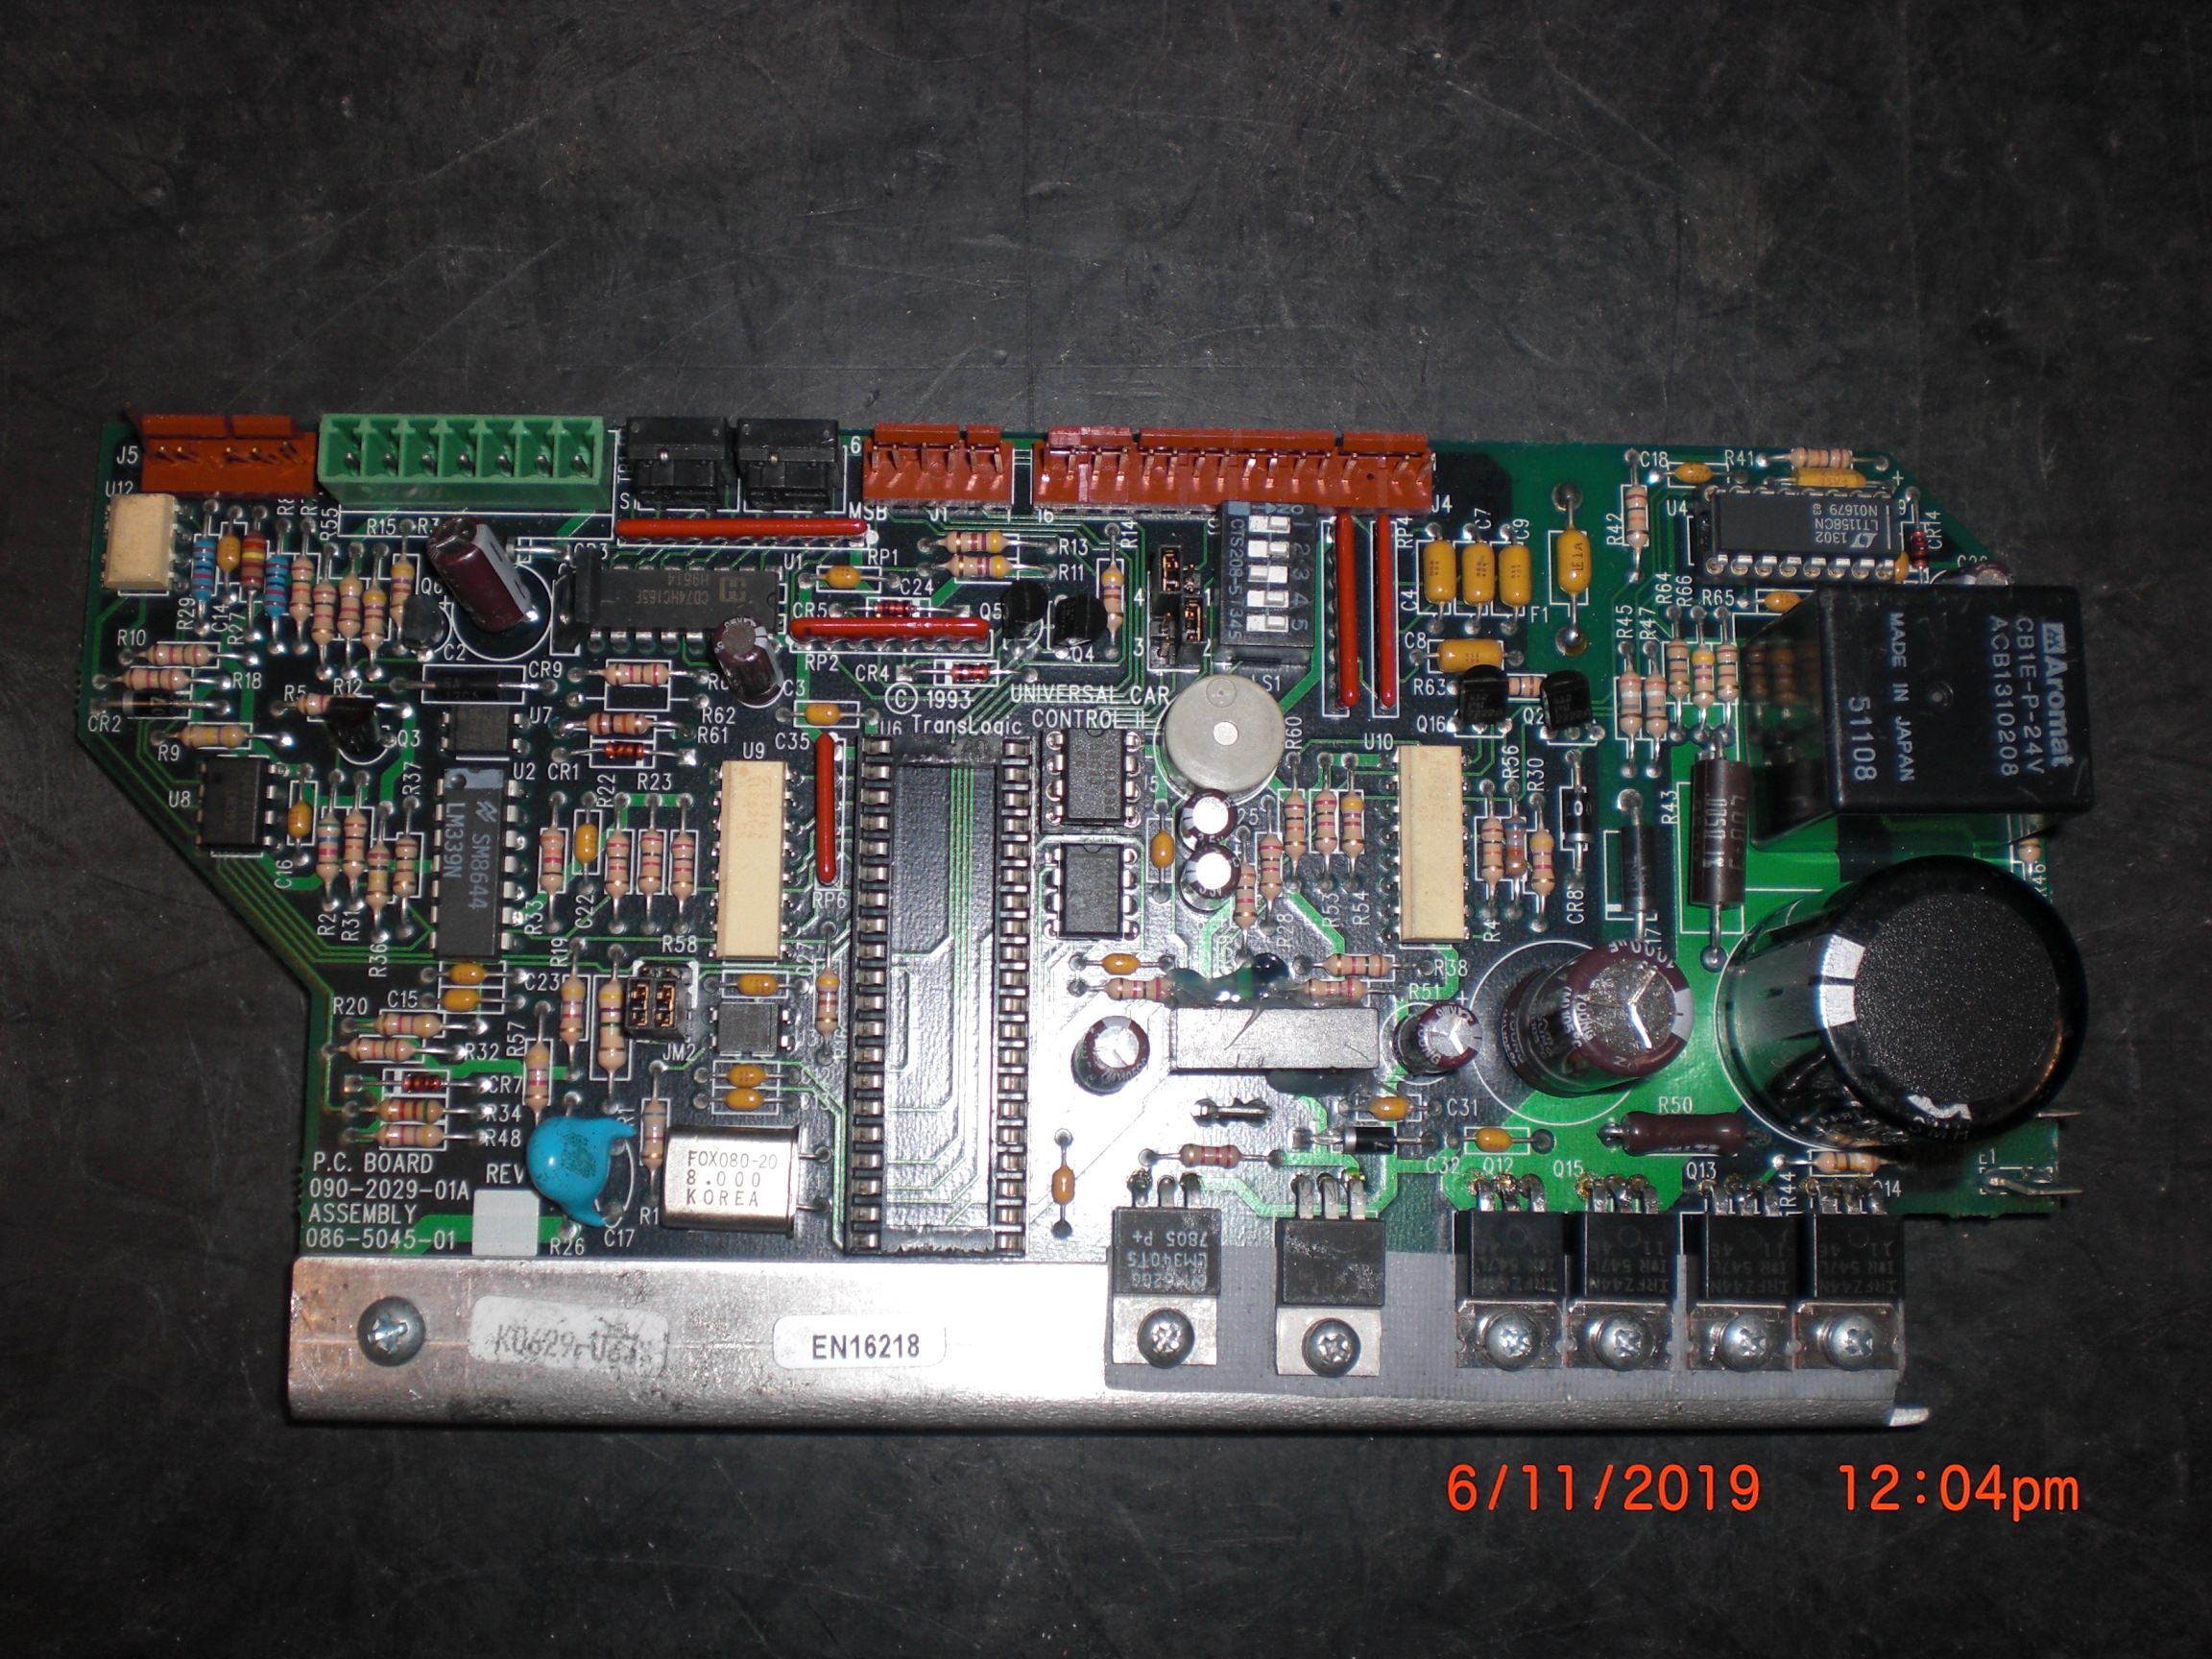 PCB TRANSLOGIC 086-5045-01 CAR Board